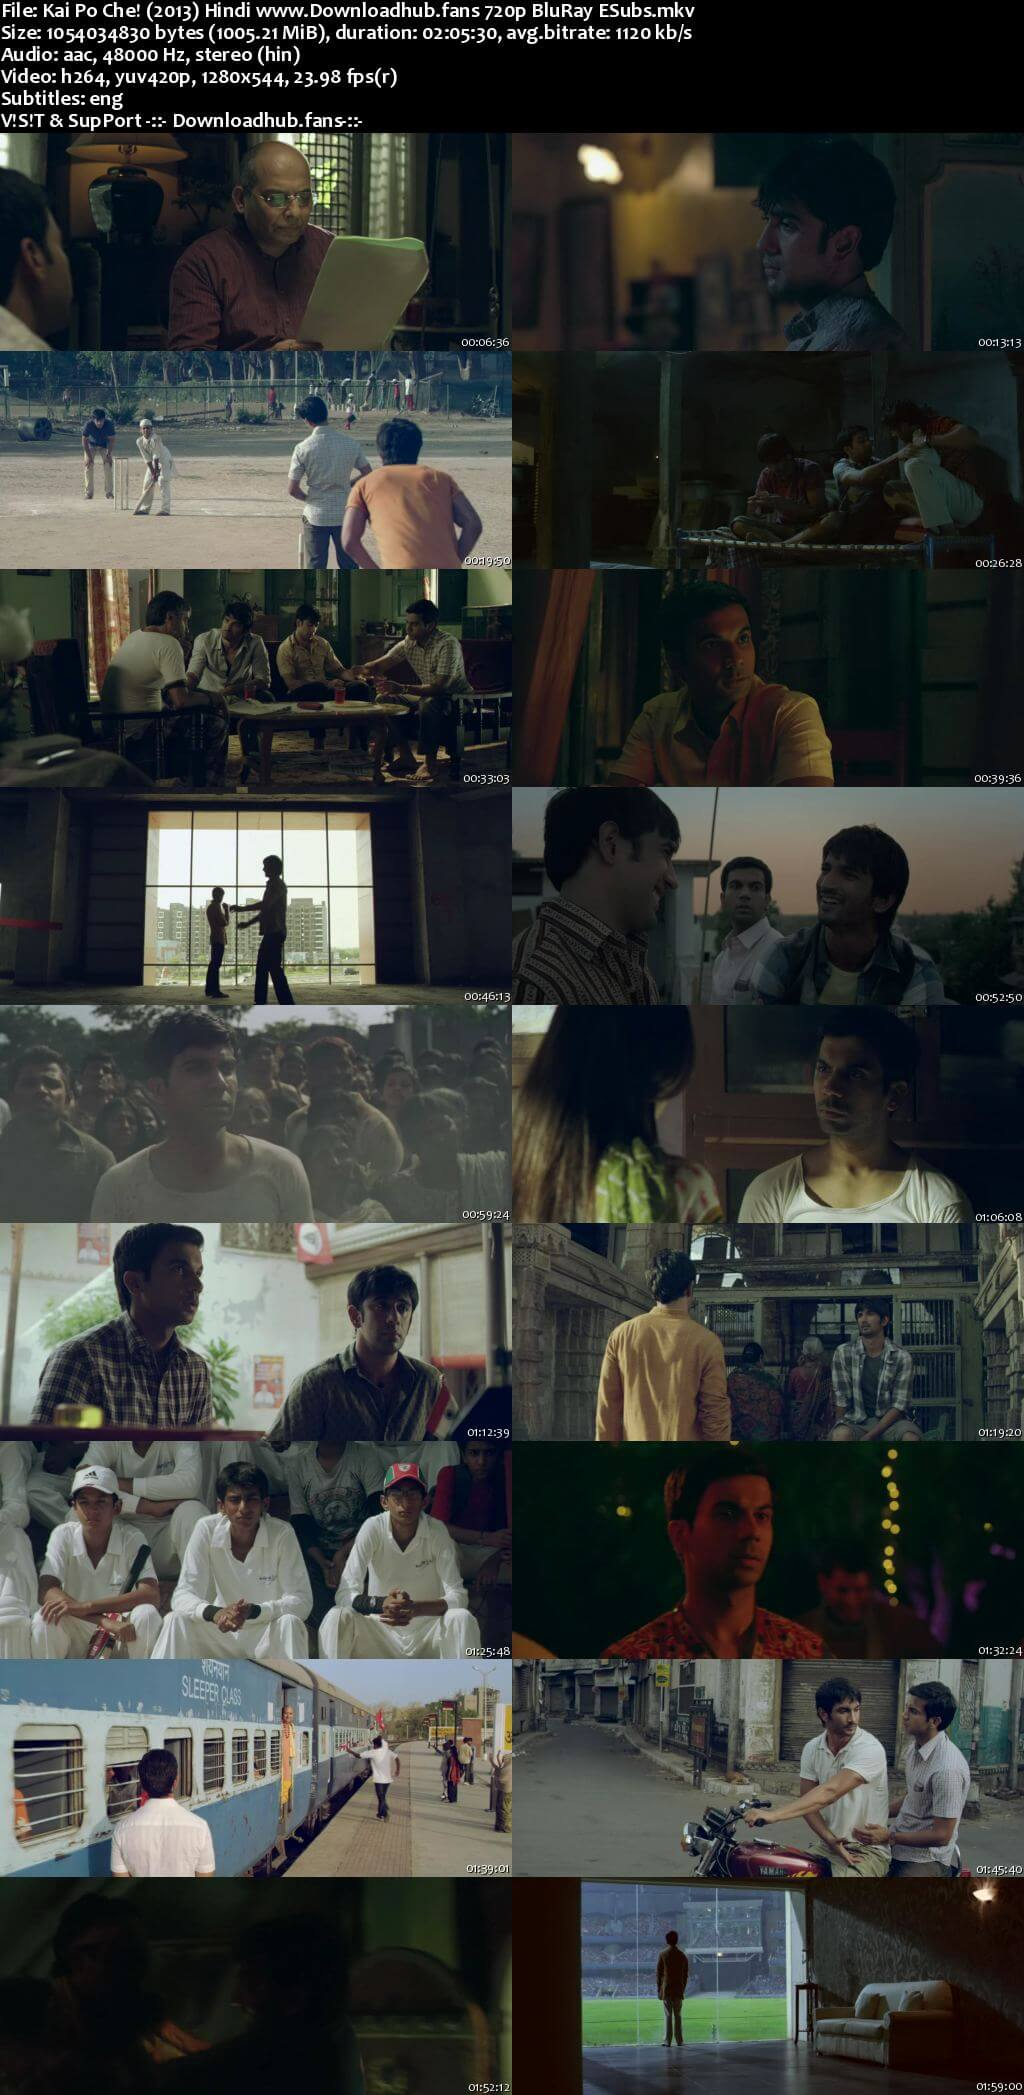 Kai po che! 2013 Hindi 720p BluRay ESubs